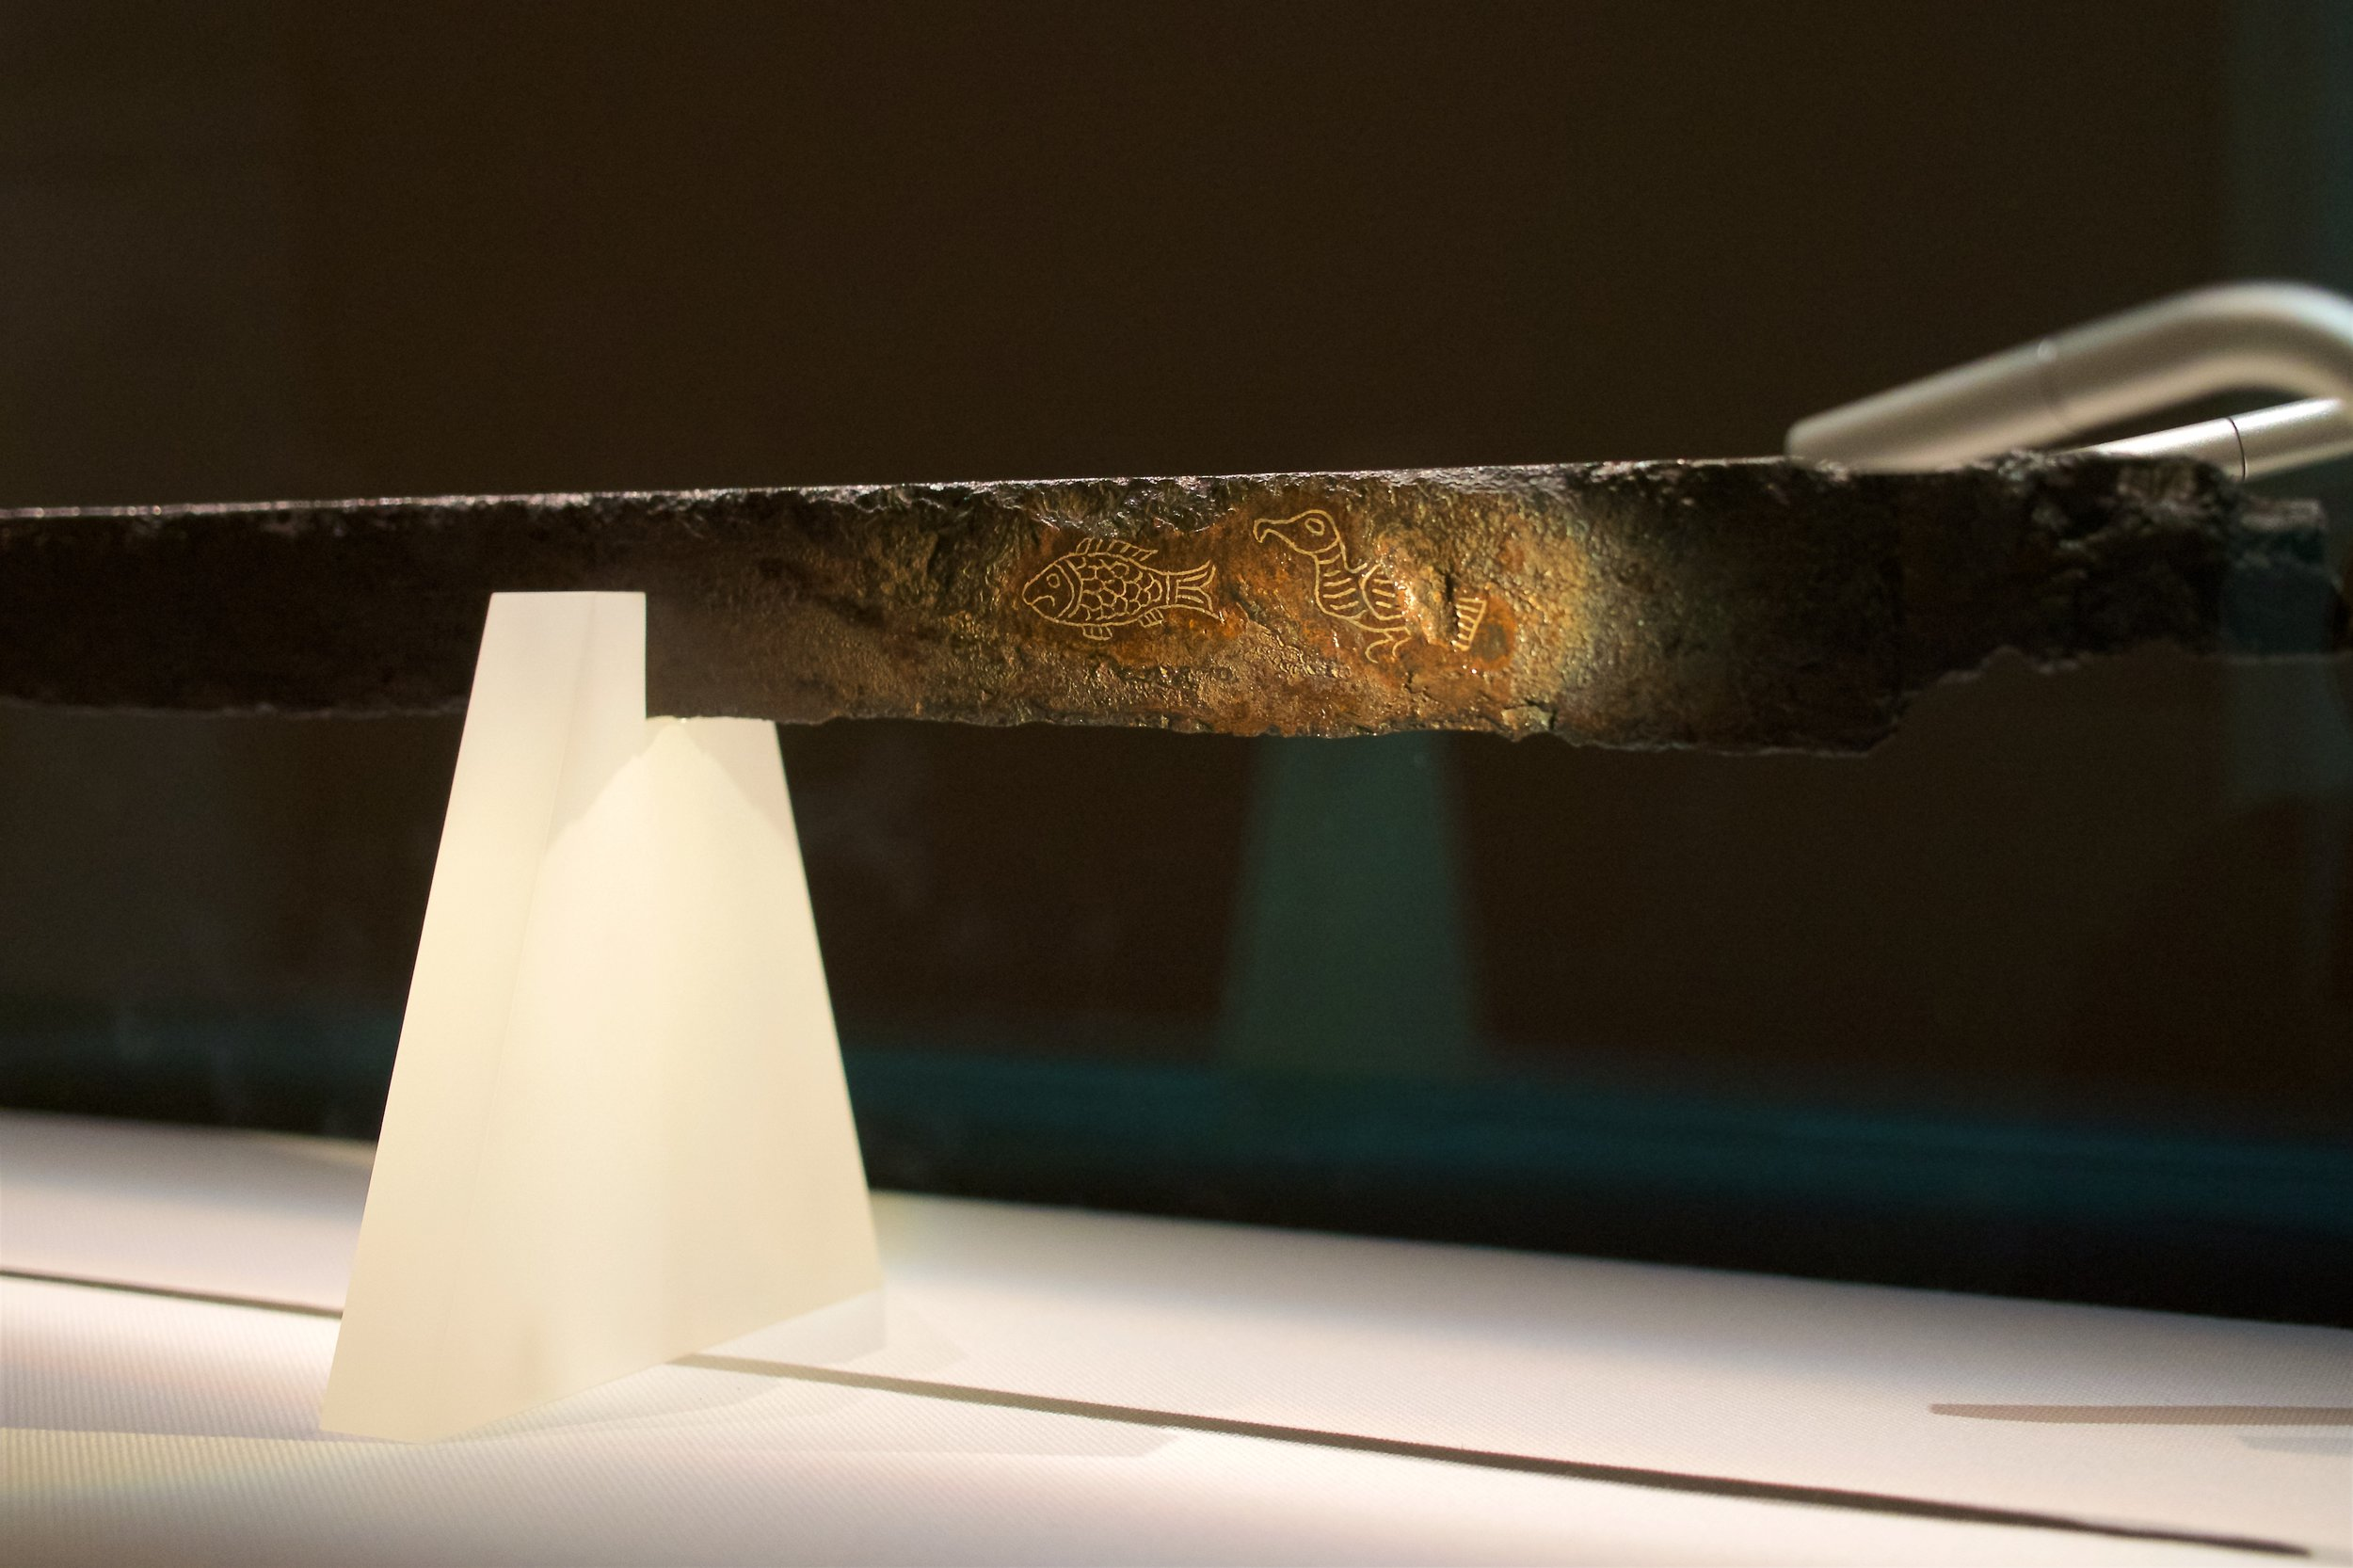 Iron sword with silver inlay inscription